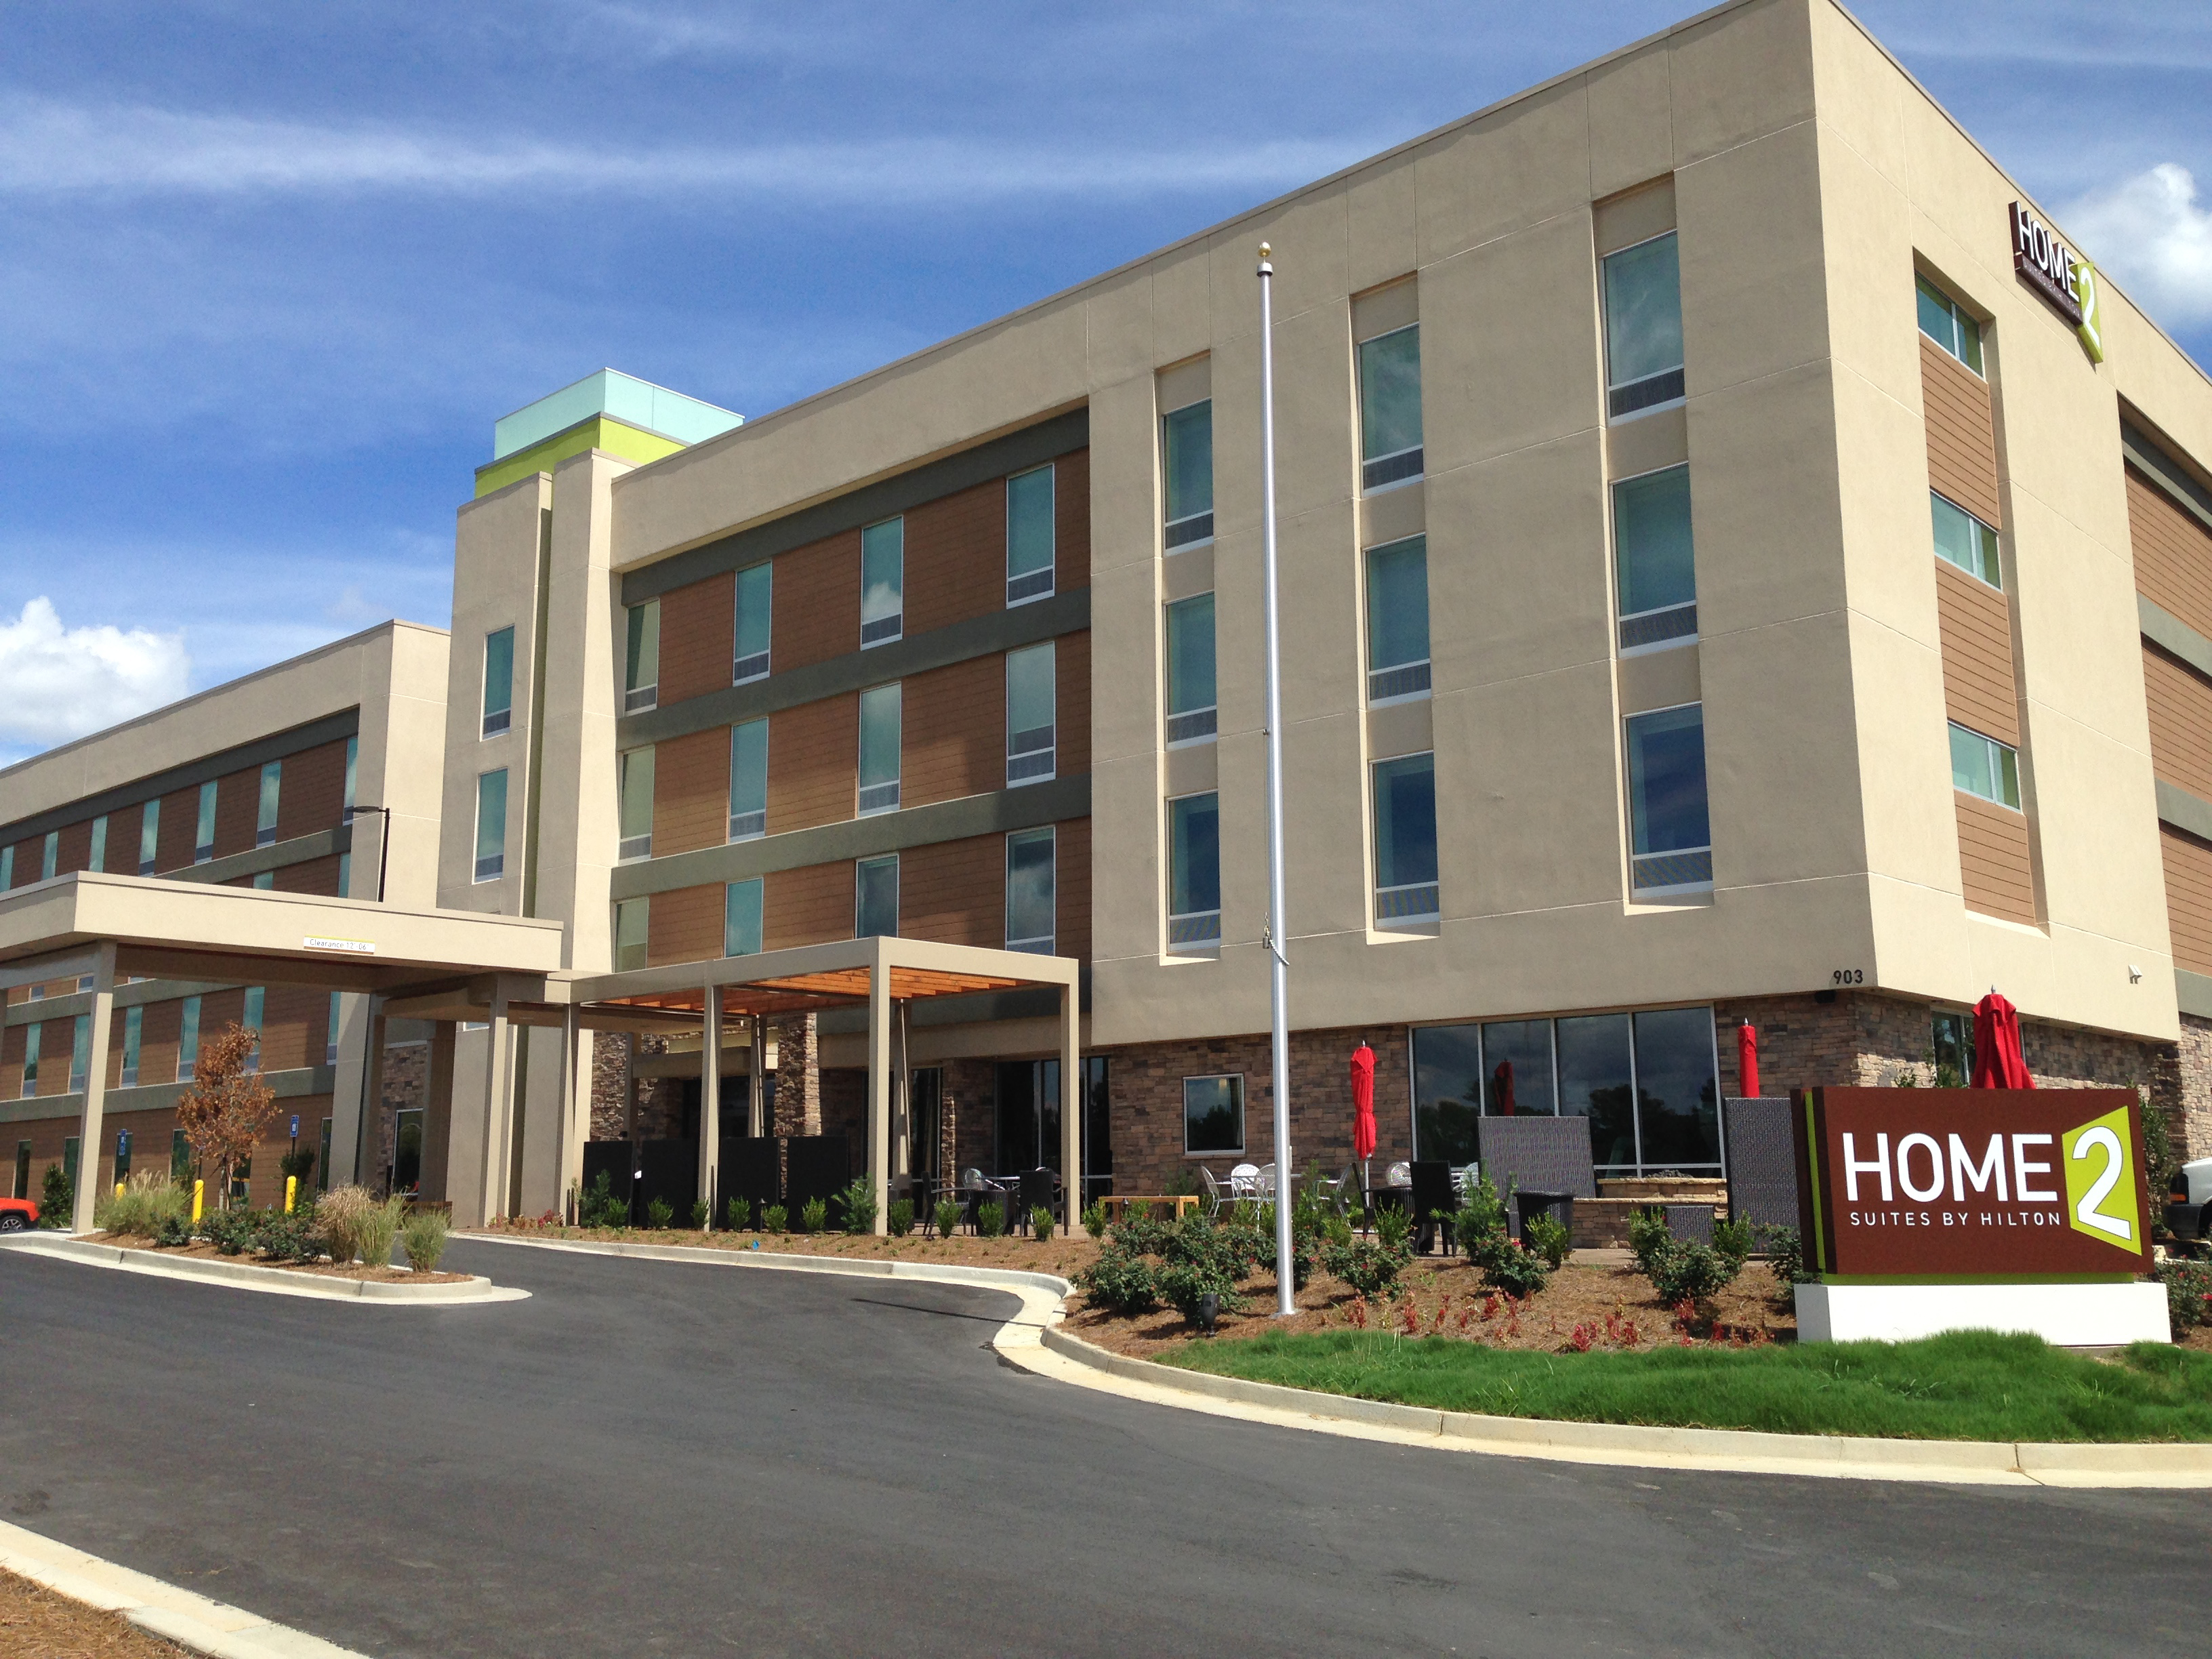 Home2 suites by hilton opens newest property in grovetown for Homes 2